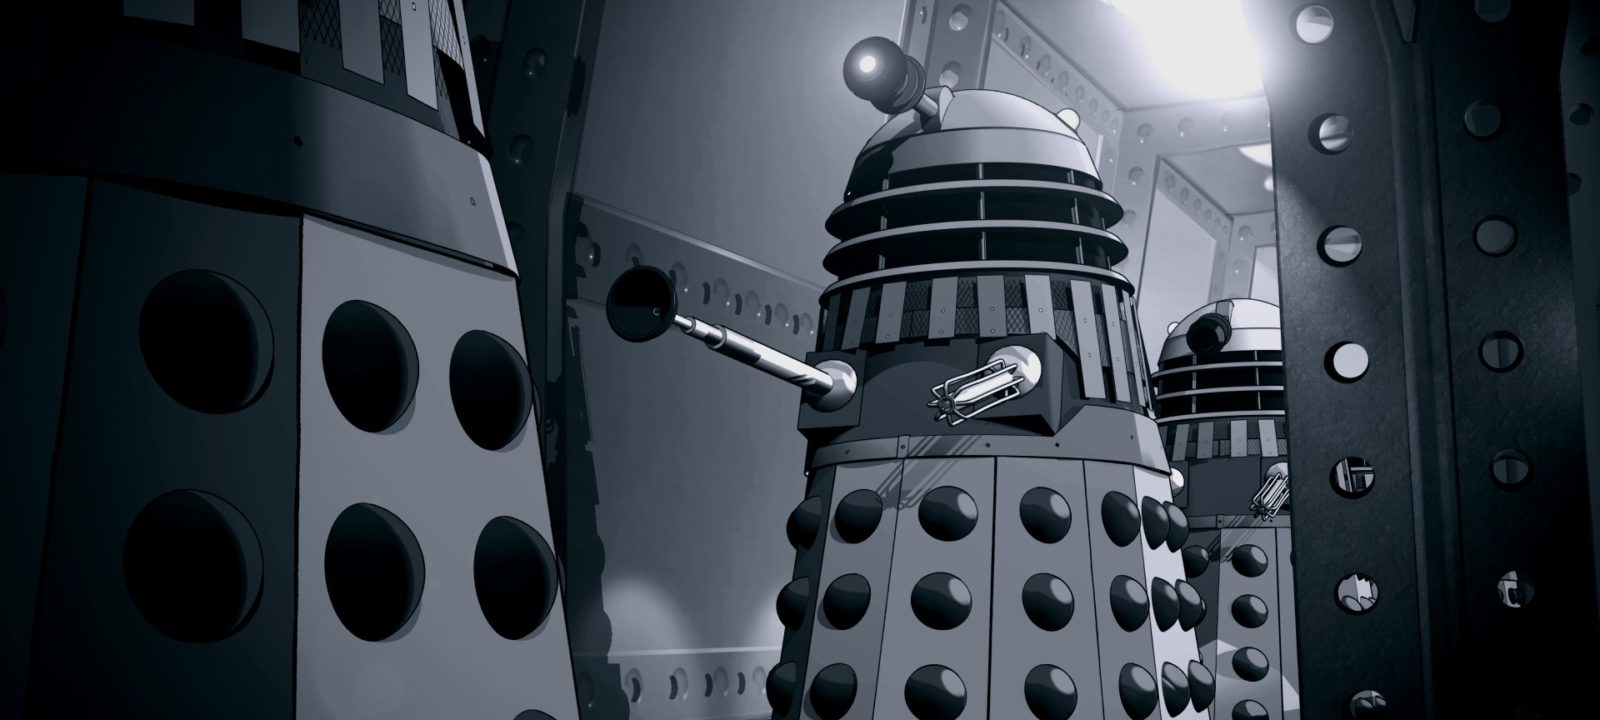 Power of the Daleks (Photo: BBC)